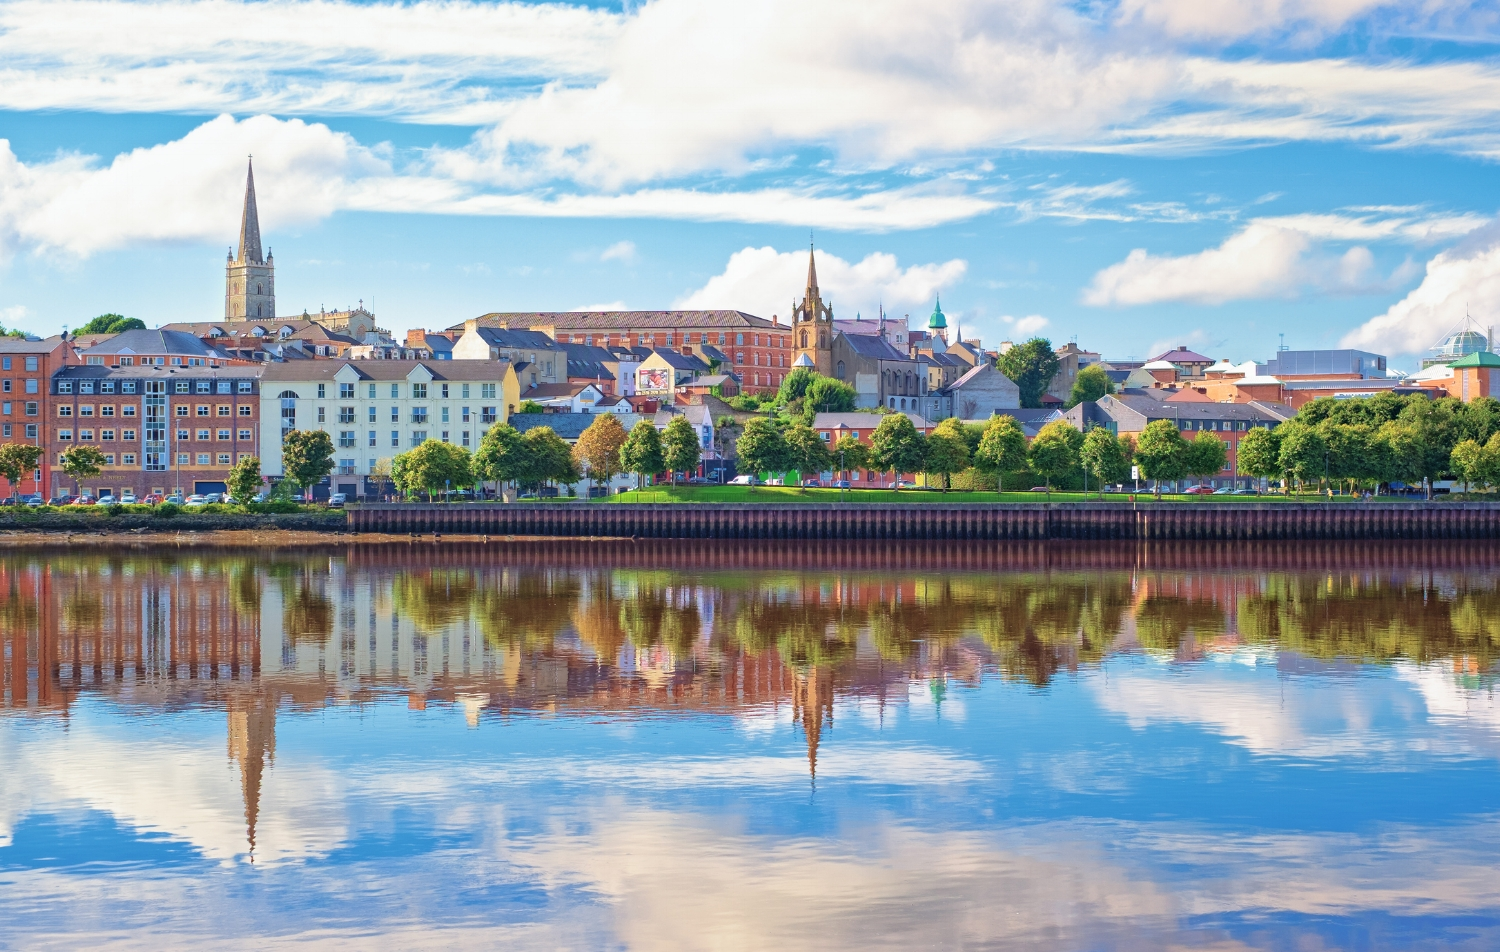 The Walled City of Derry - Northern Irelands' second largest city, formerly